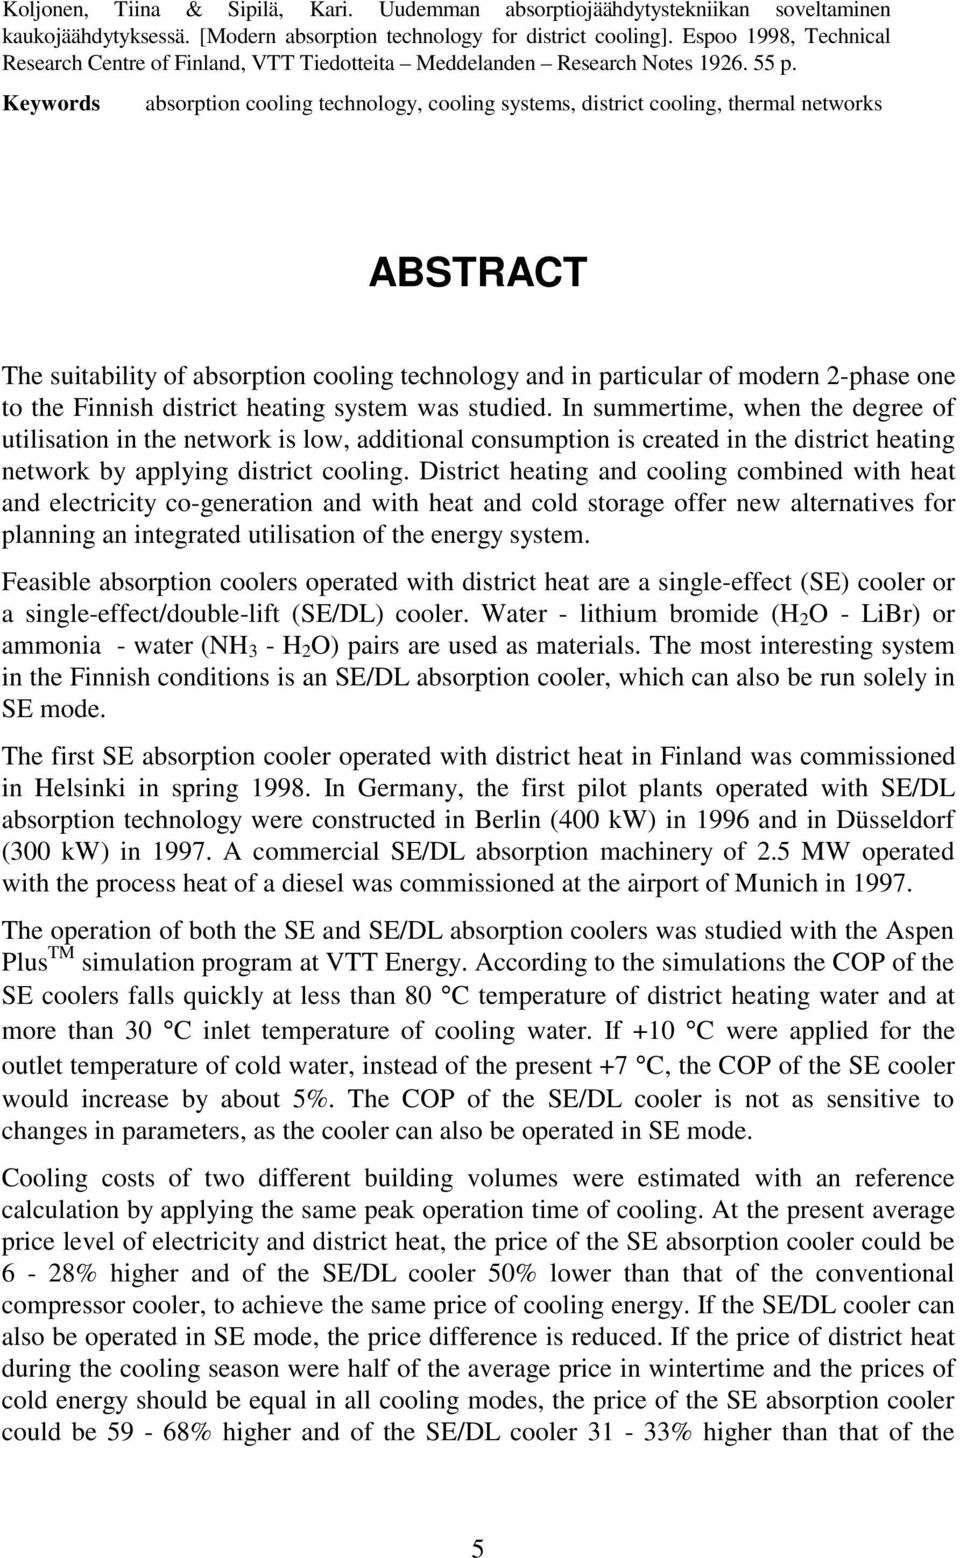 Keywords absorption cooling technology, cooling systems, district cooling, thermal networks ABSTRACT The suitability of absorption cooling technology and in particular of modern 2-phase one to the